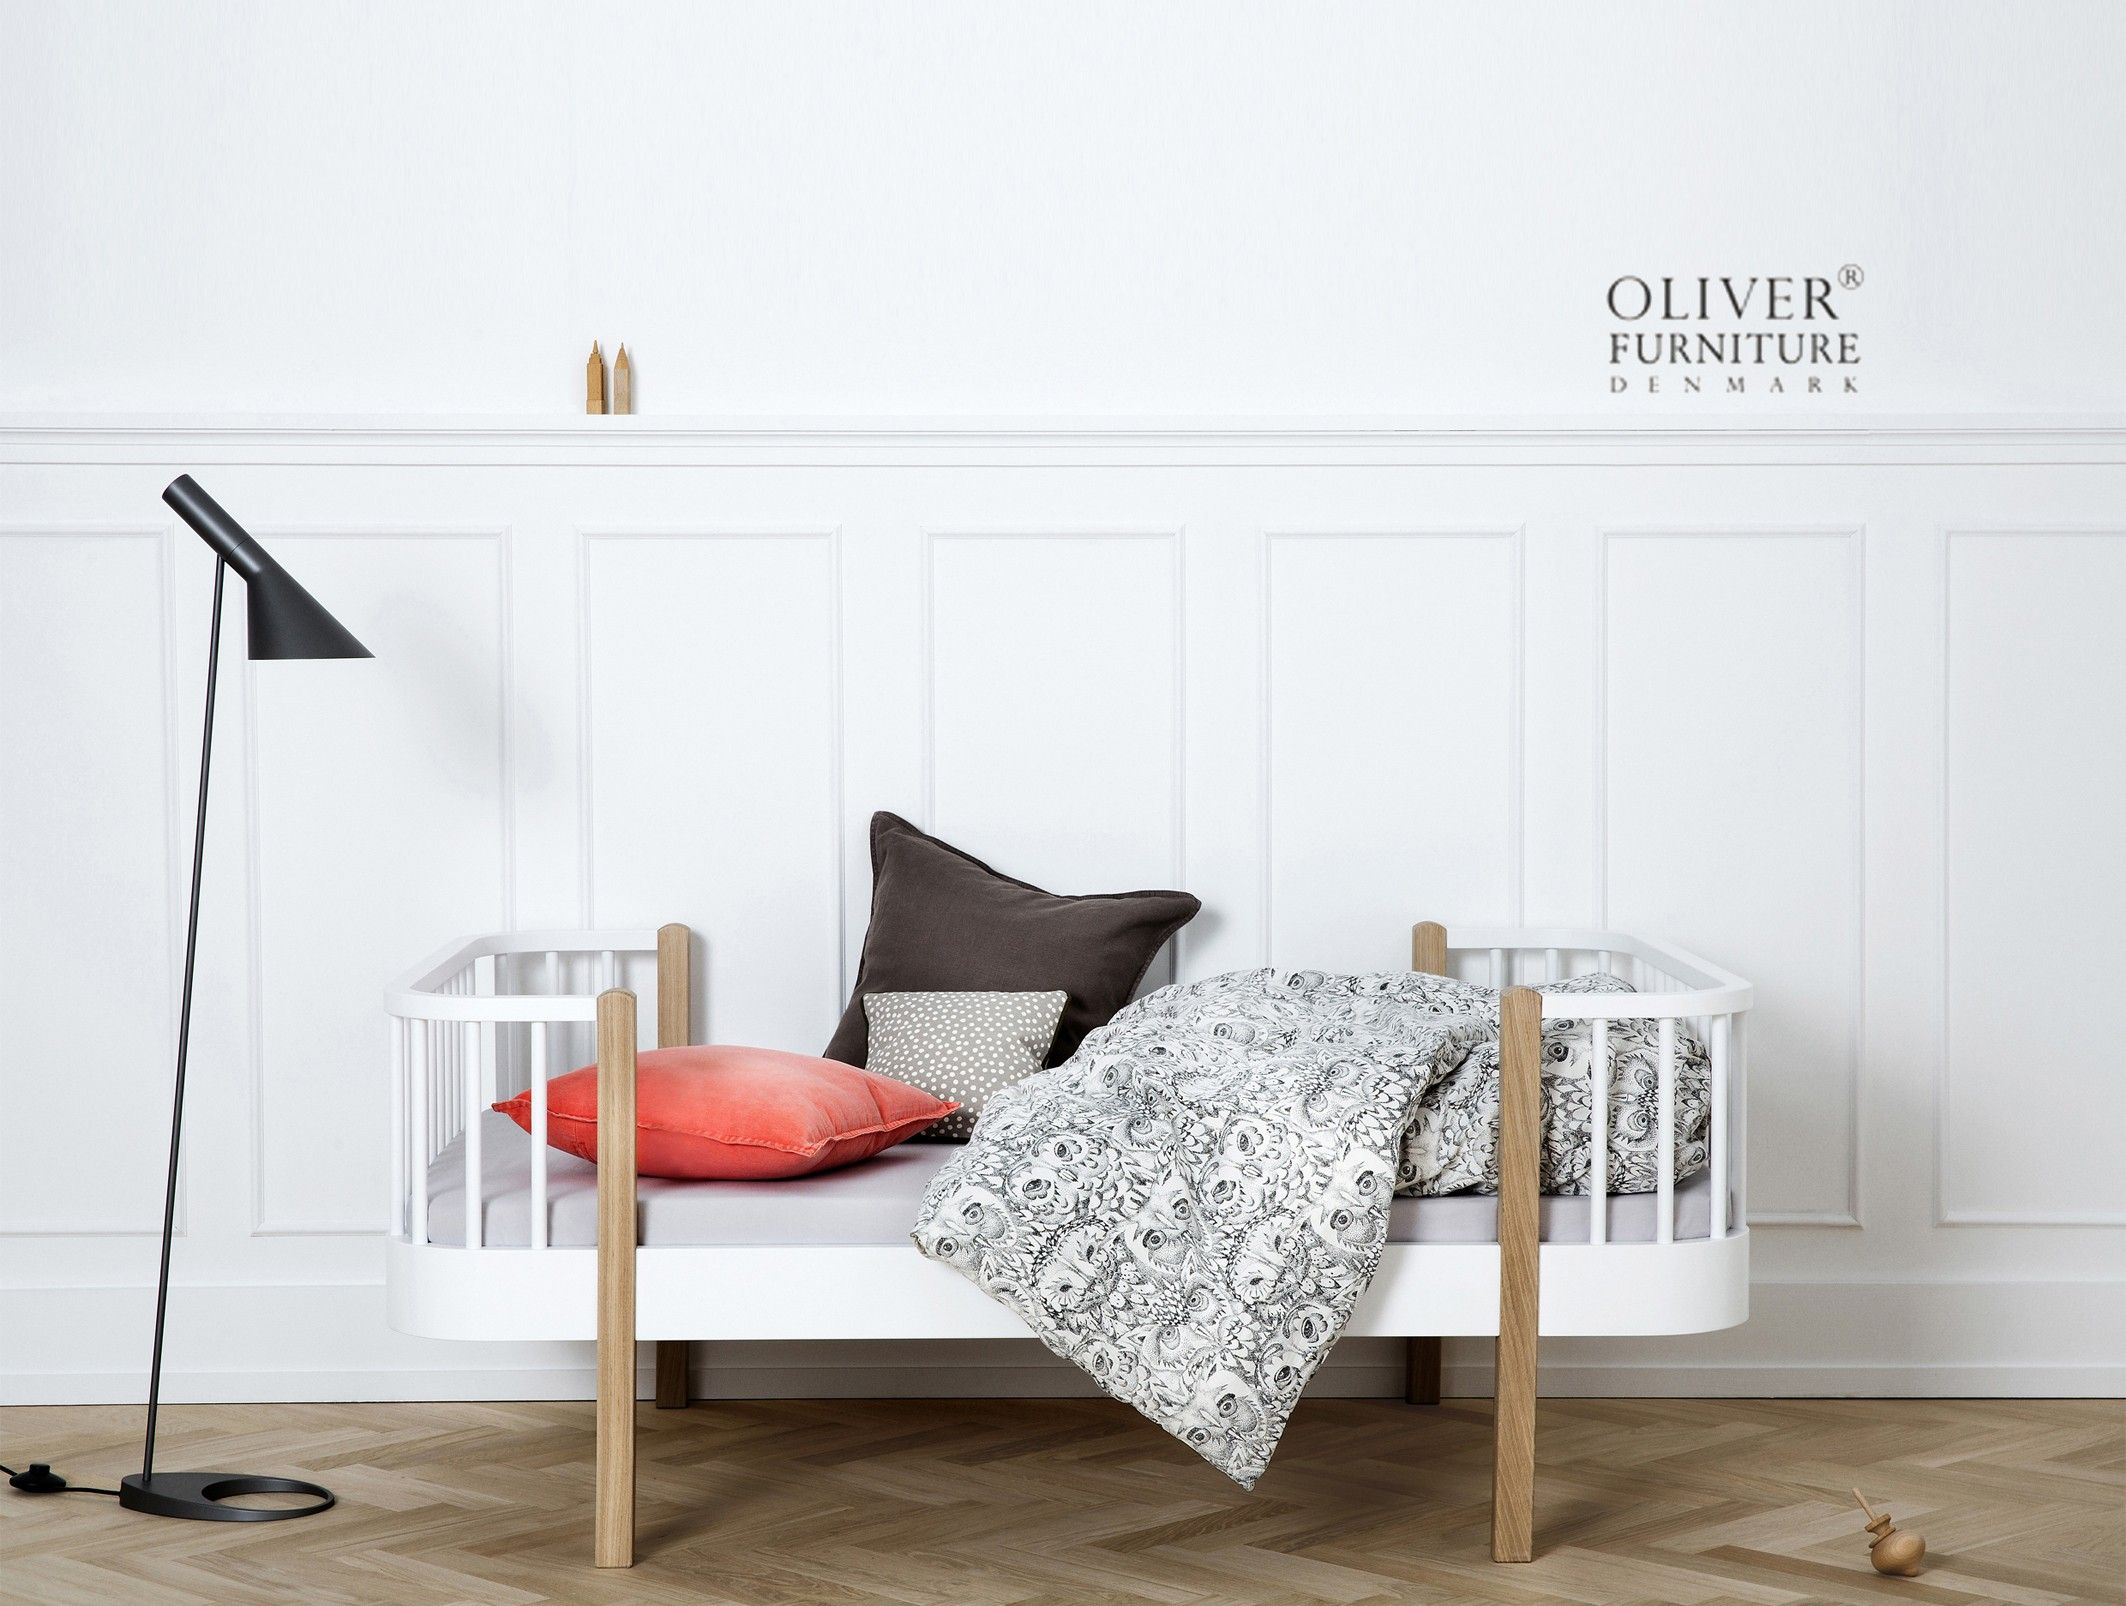 oliver furniture die besten kinderzimmerm bel im skandinavischen stil. Black Bedroom Furniture Sets. Home Design Ideas